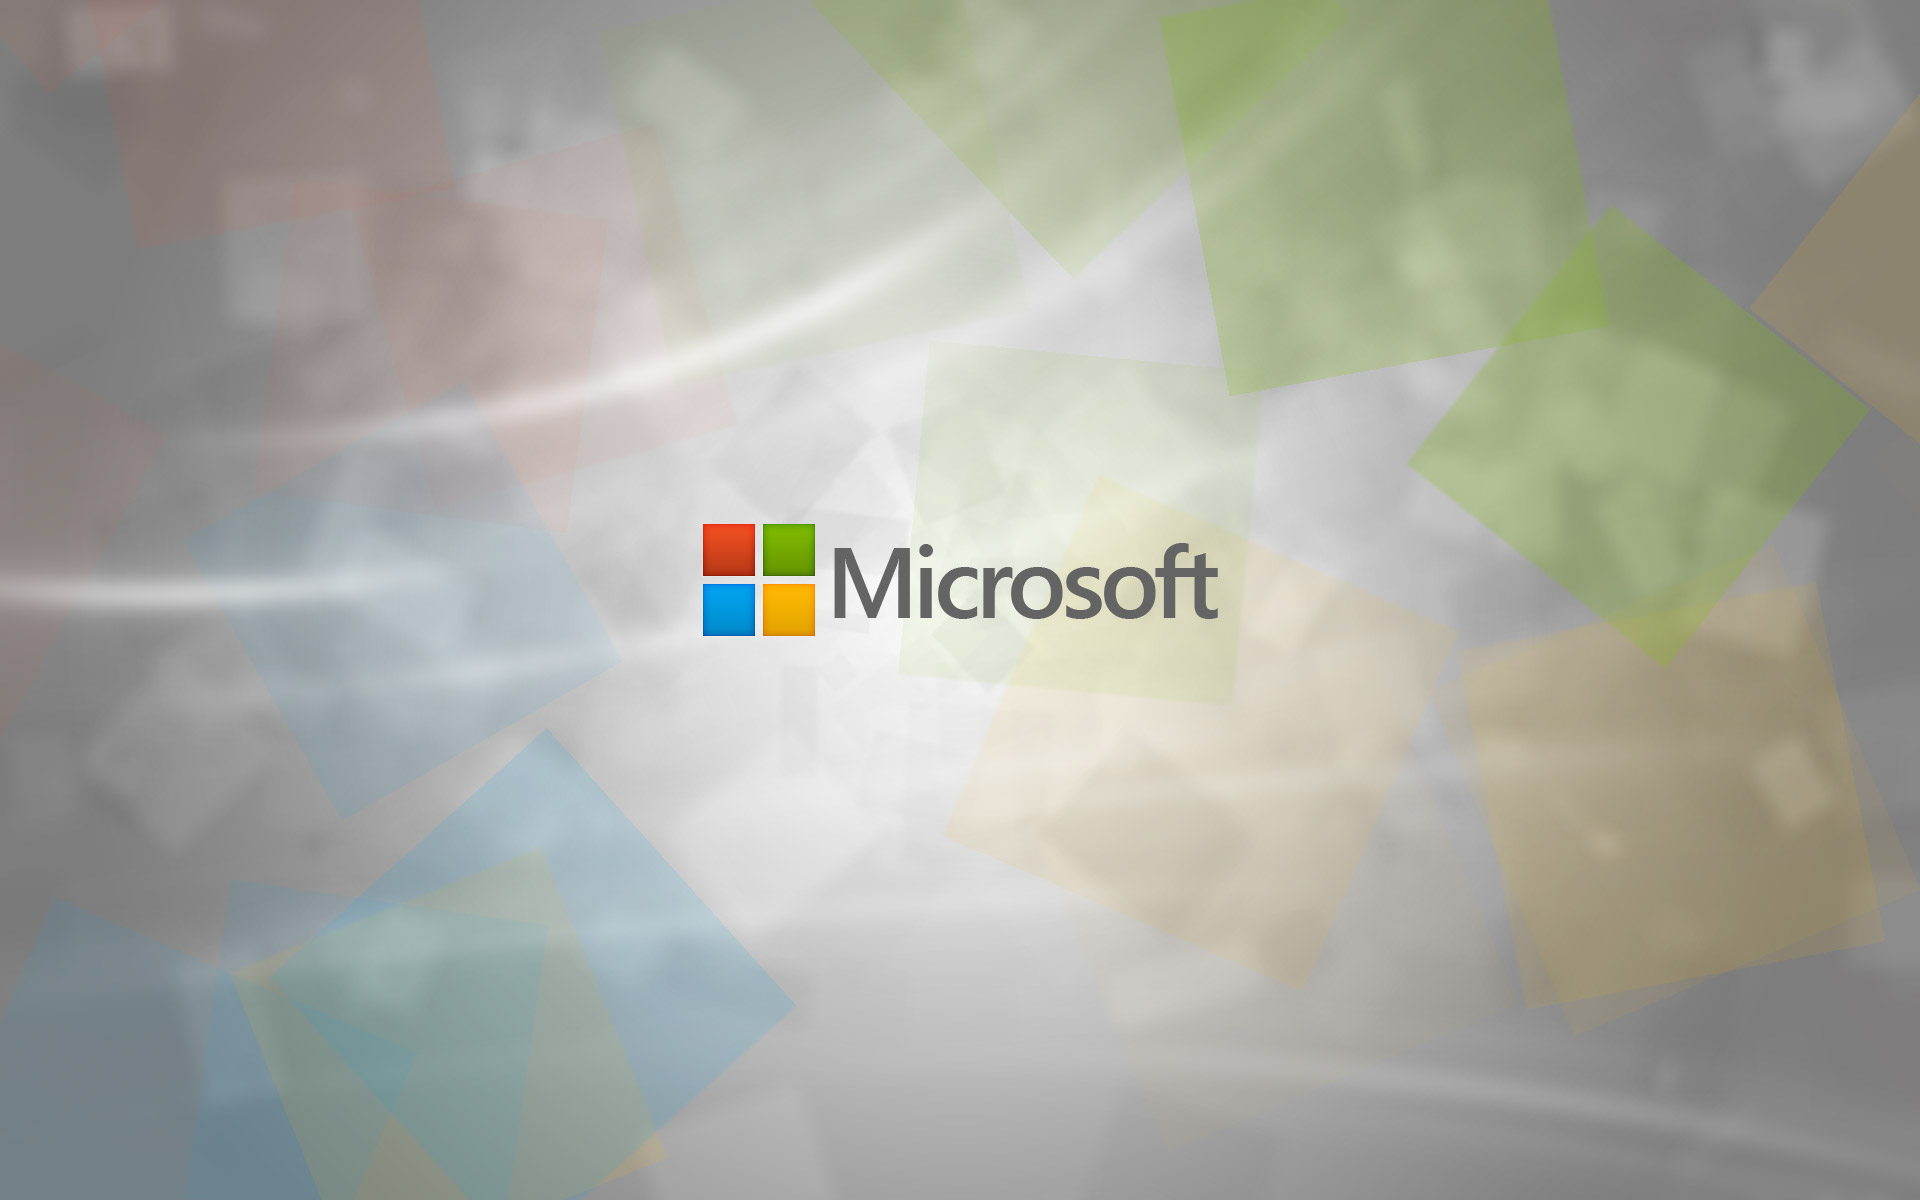 microsoft wallpaper backgrounds   wwwhigh definition wallpaper 1920x1200